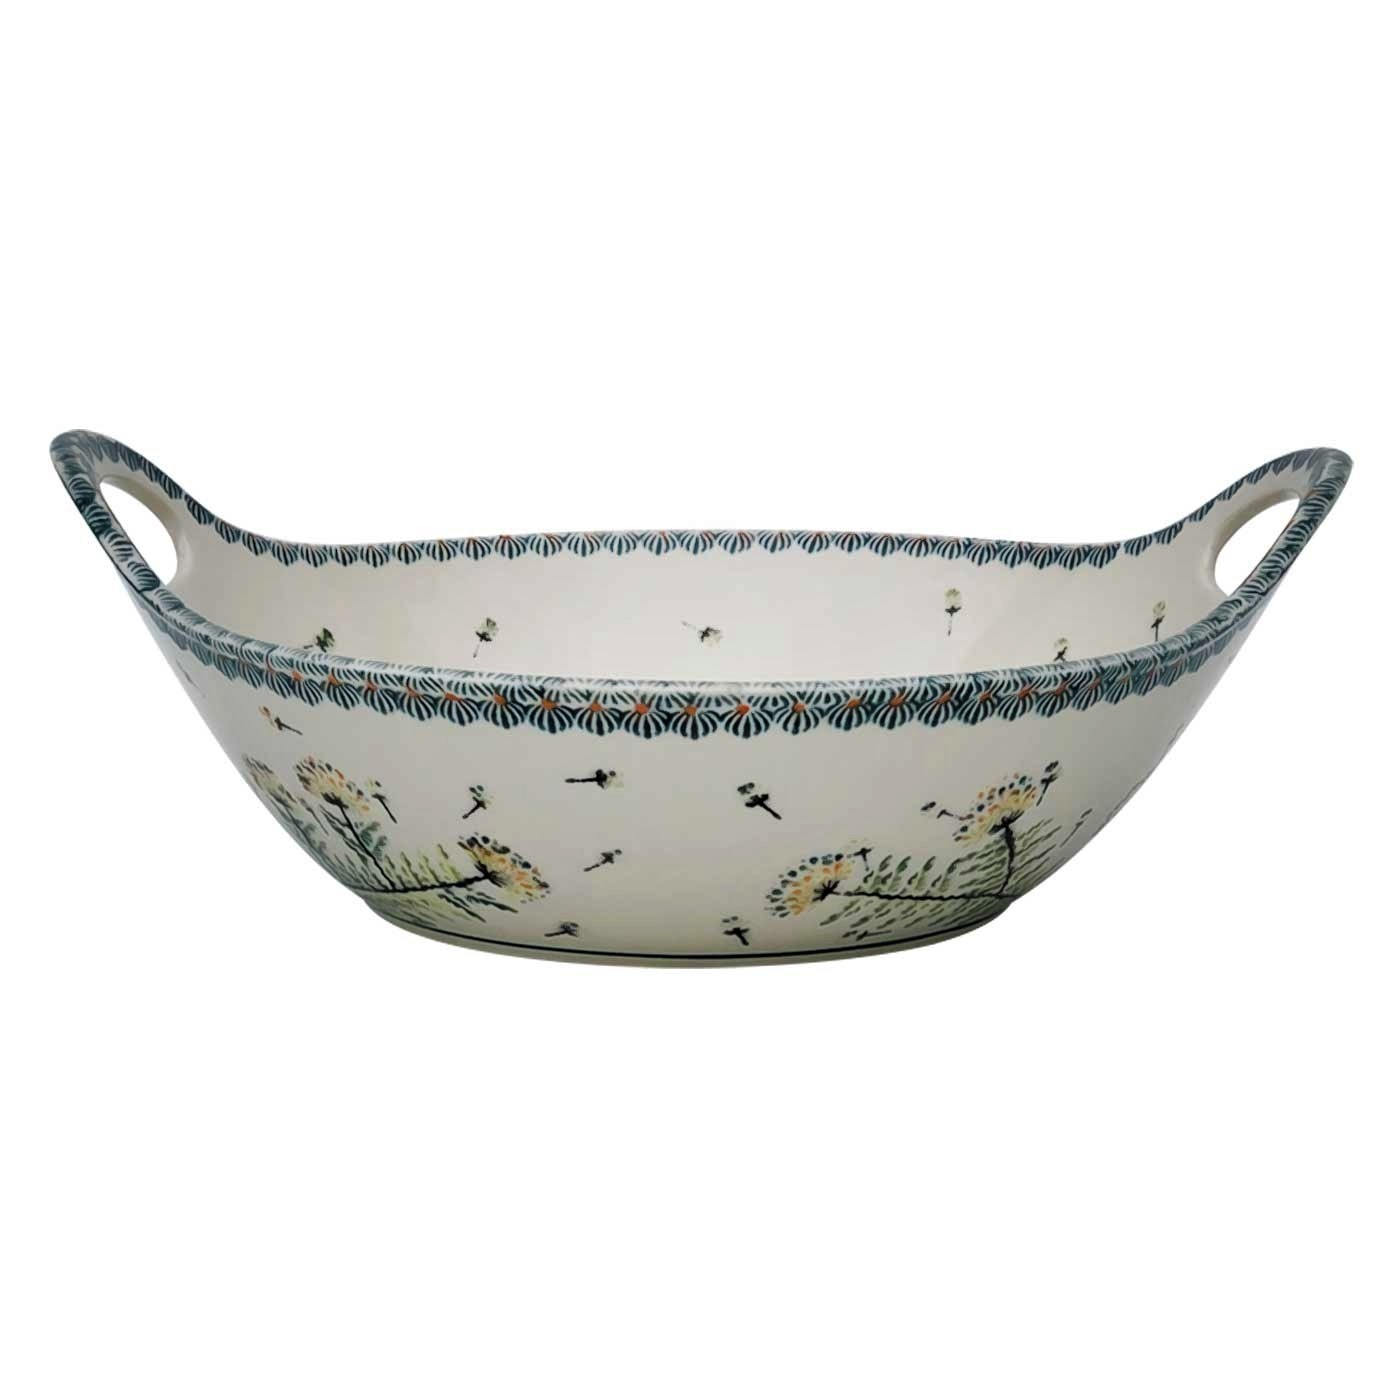 "Pottery Avenue 13"" Handled Stoneware Baker-Serving Bowl - 1347-DU201 Wish"